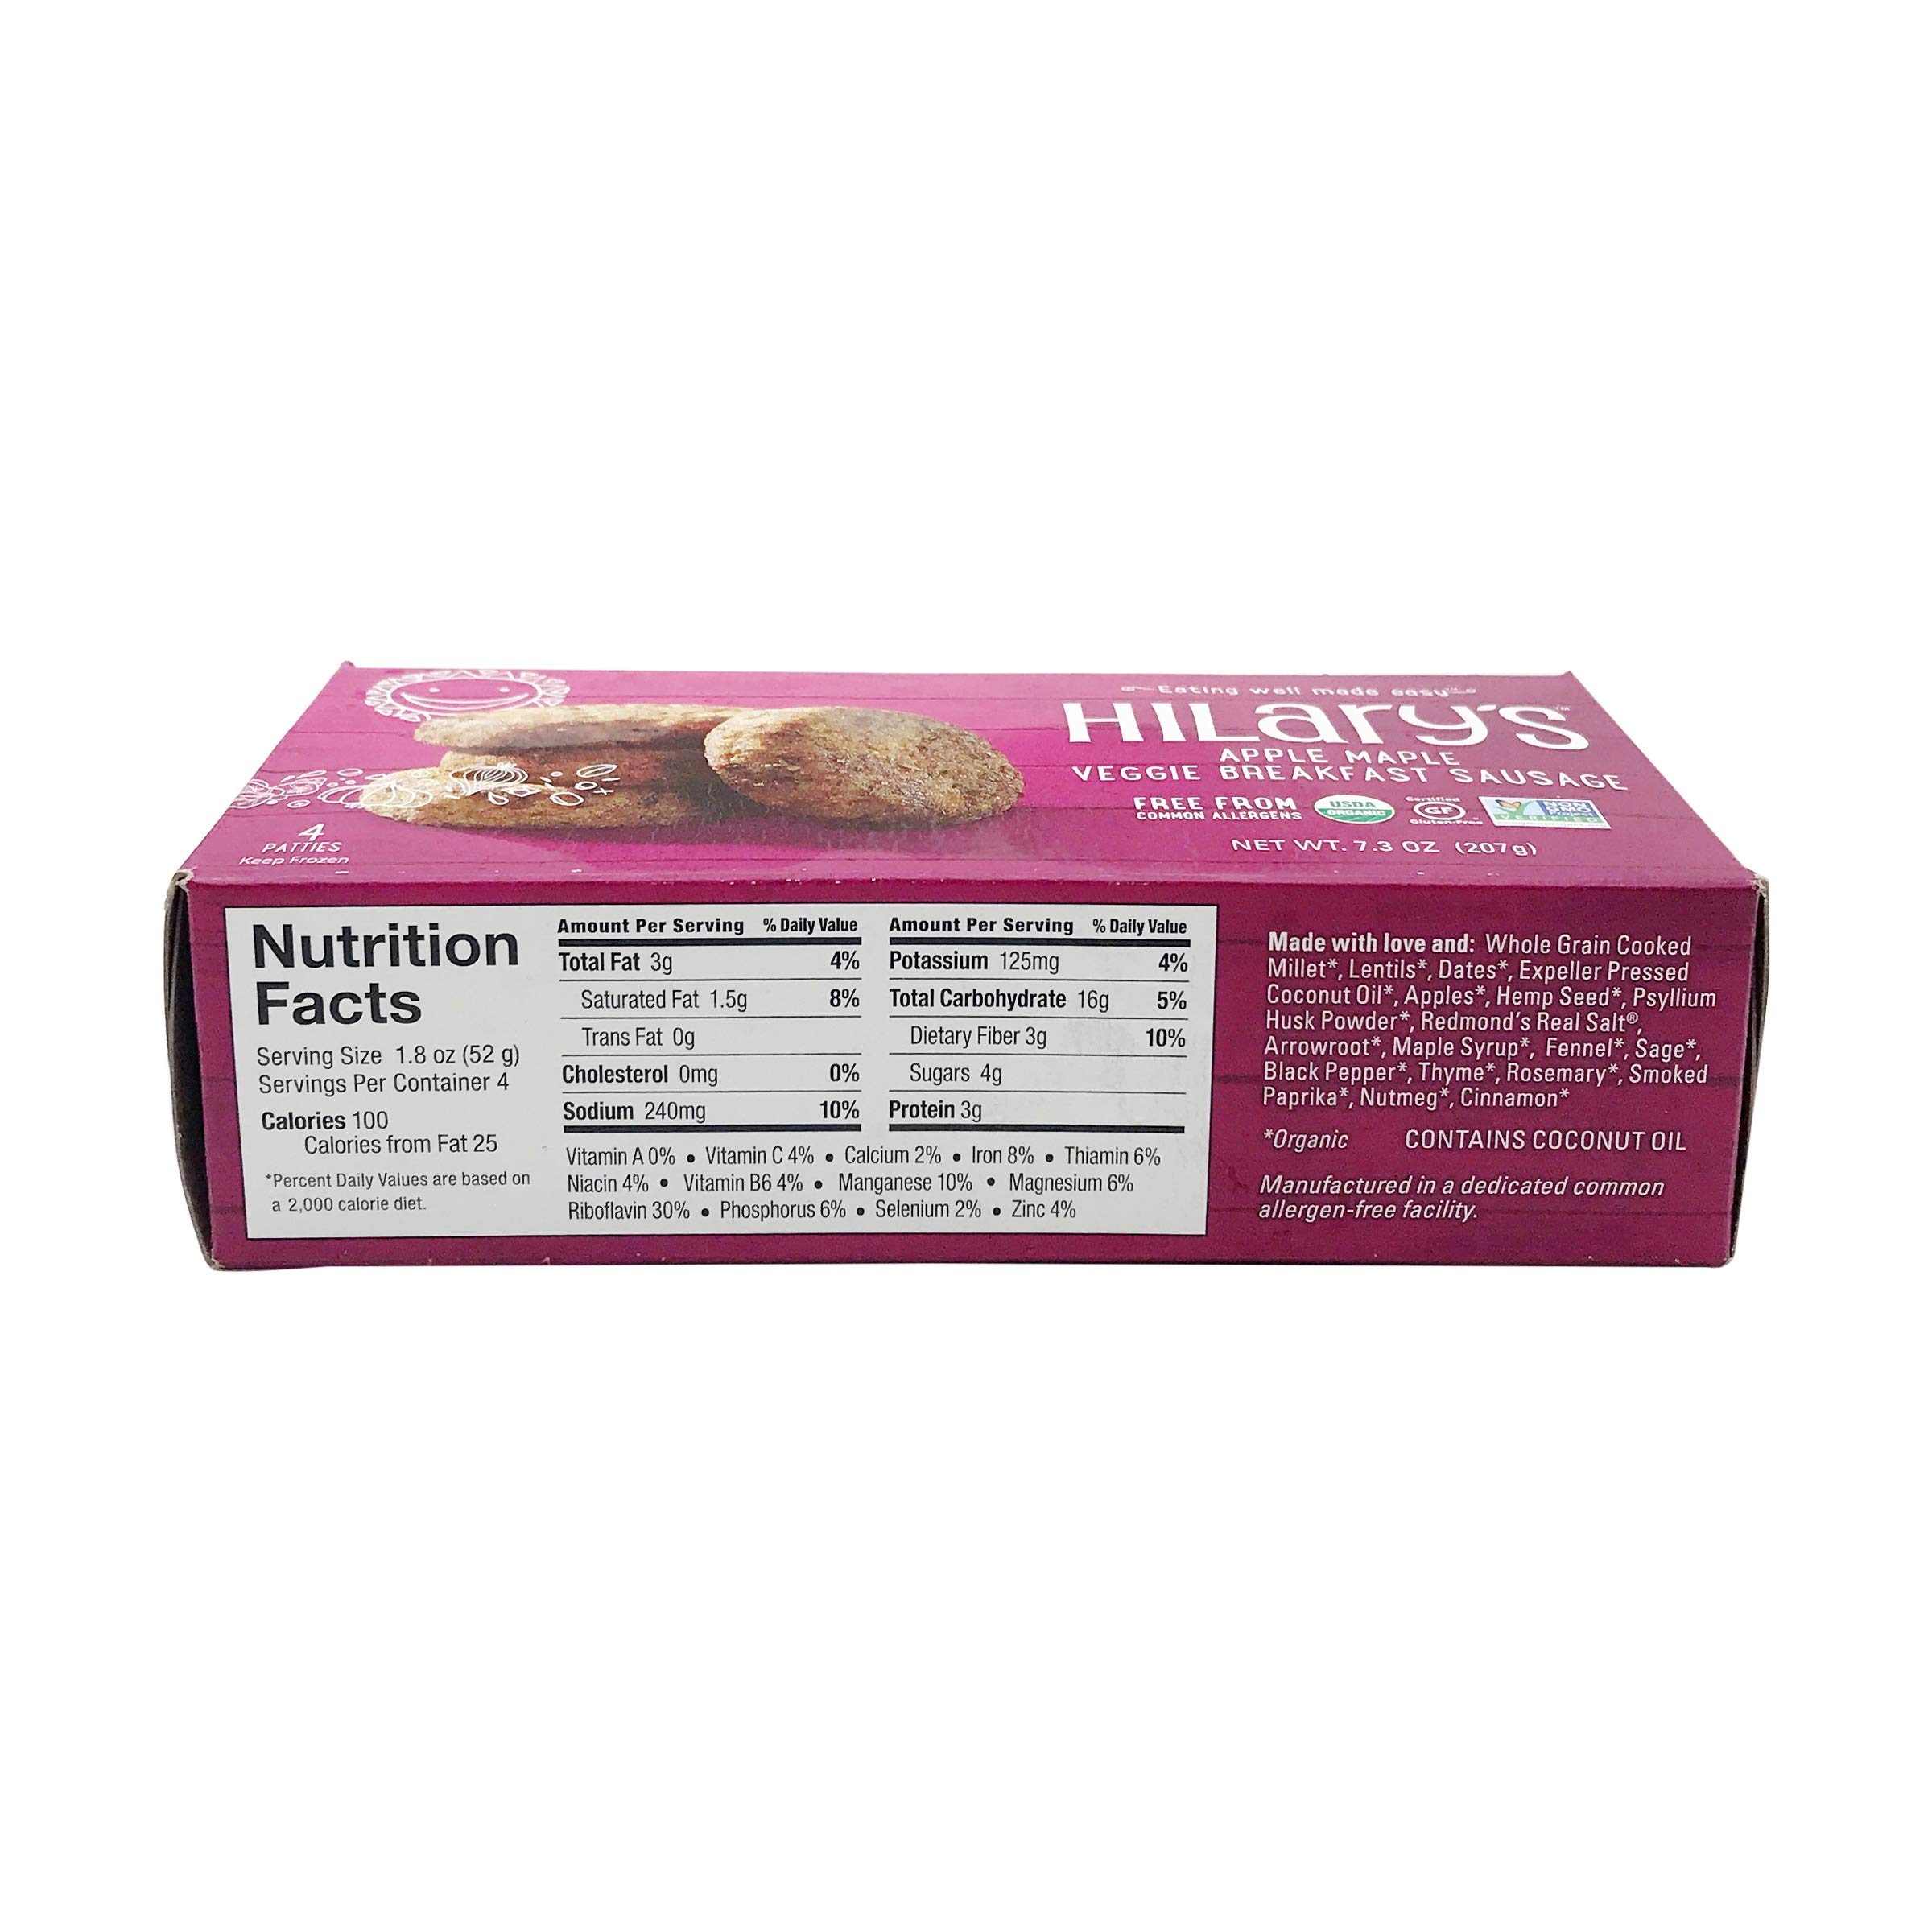 Hilary's Breakfast Sausage Variety Pack, 3 of each Flavor (6 Pack) by Hilary's (Image #3)